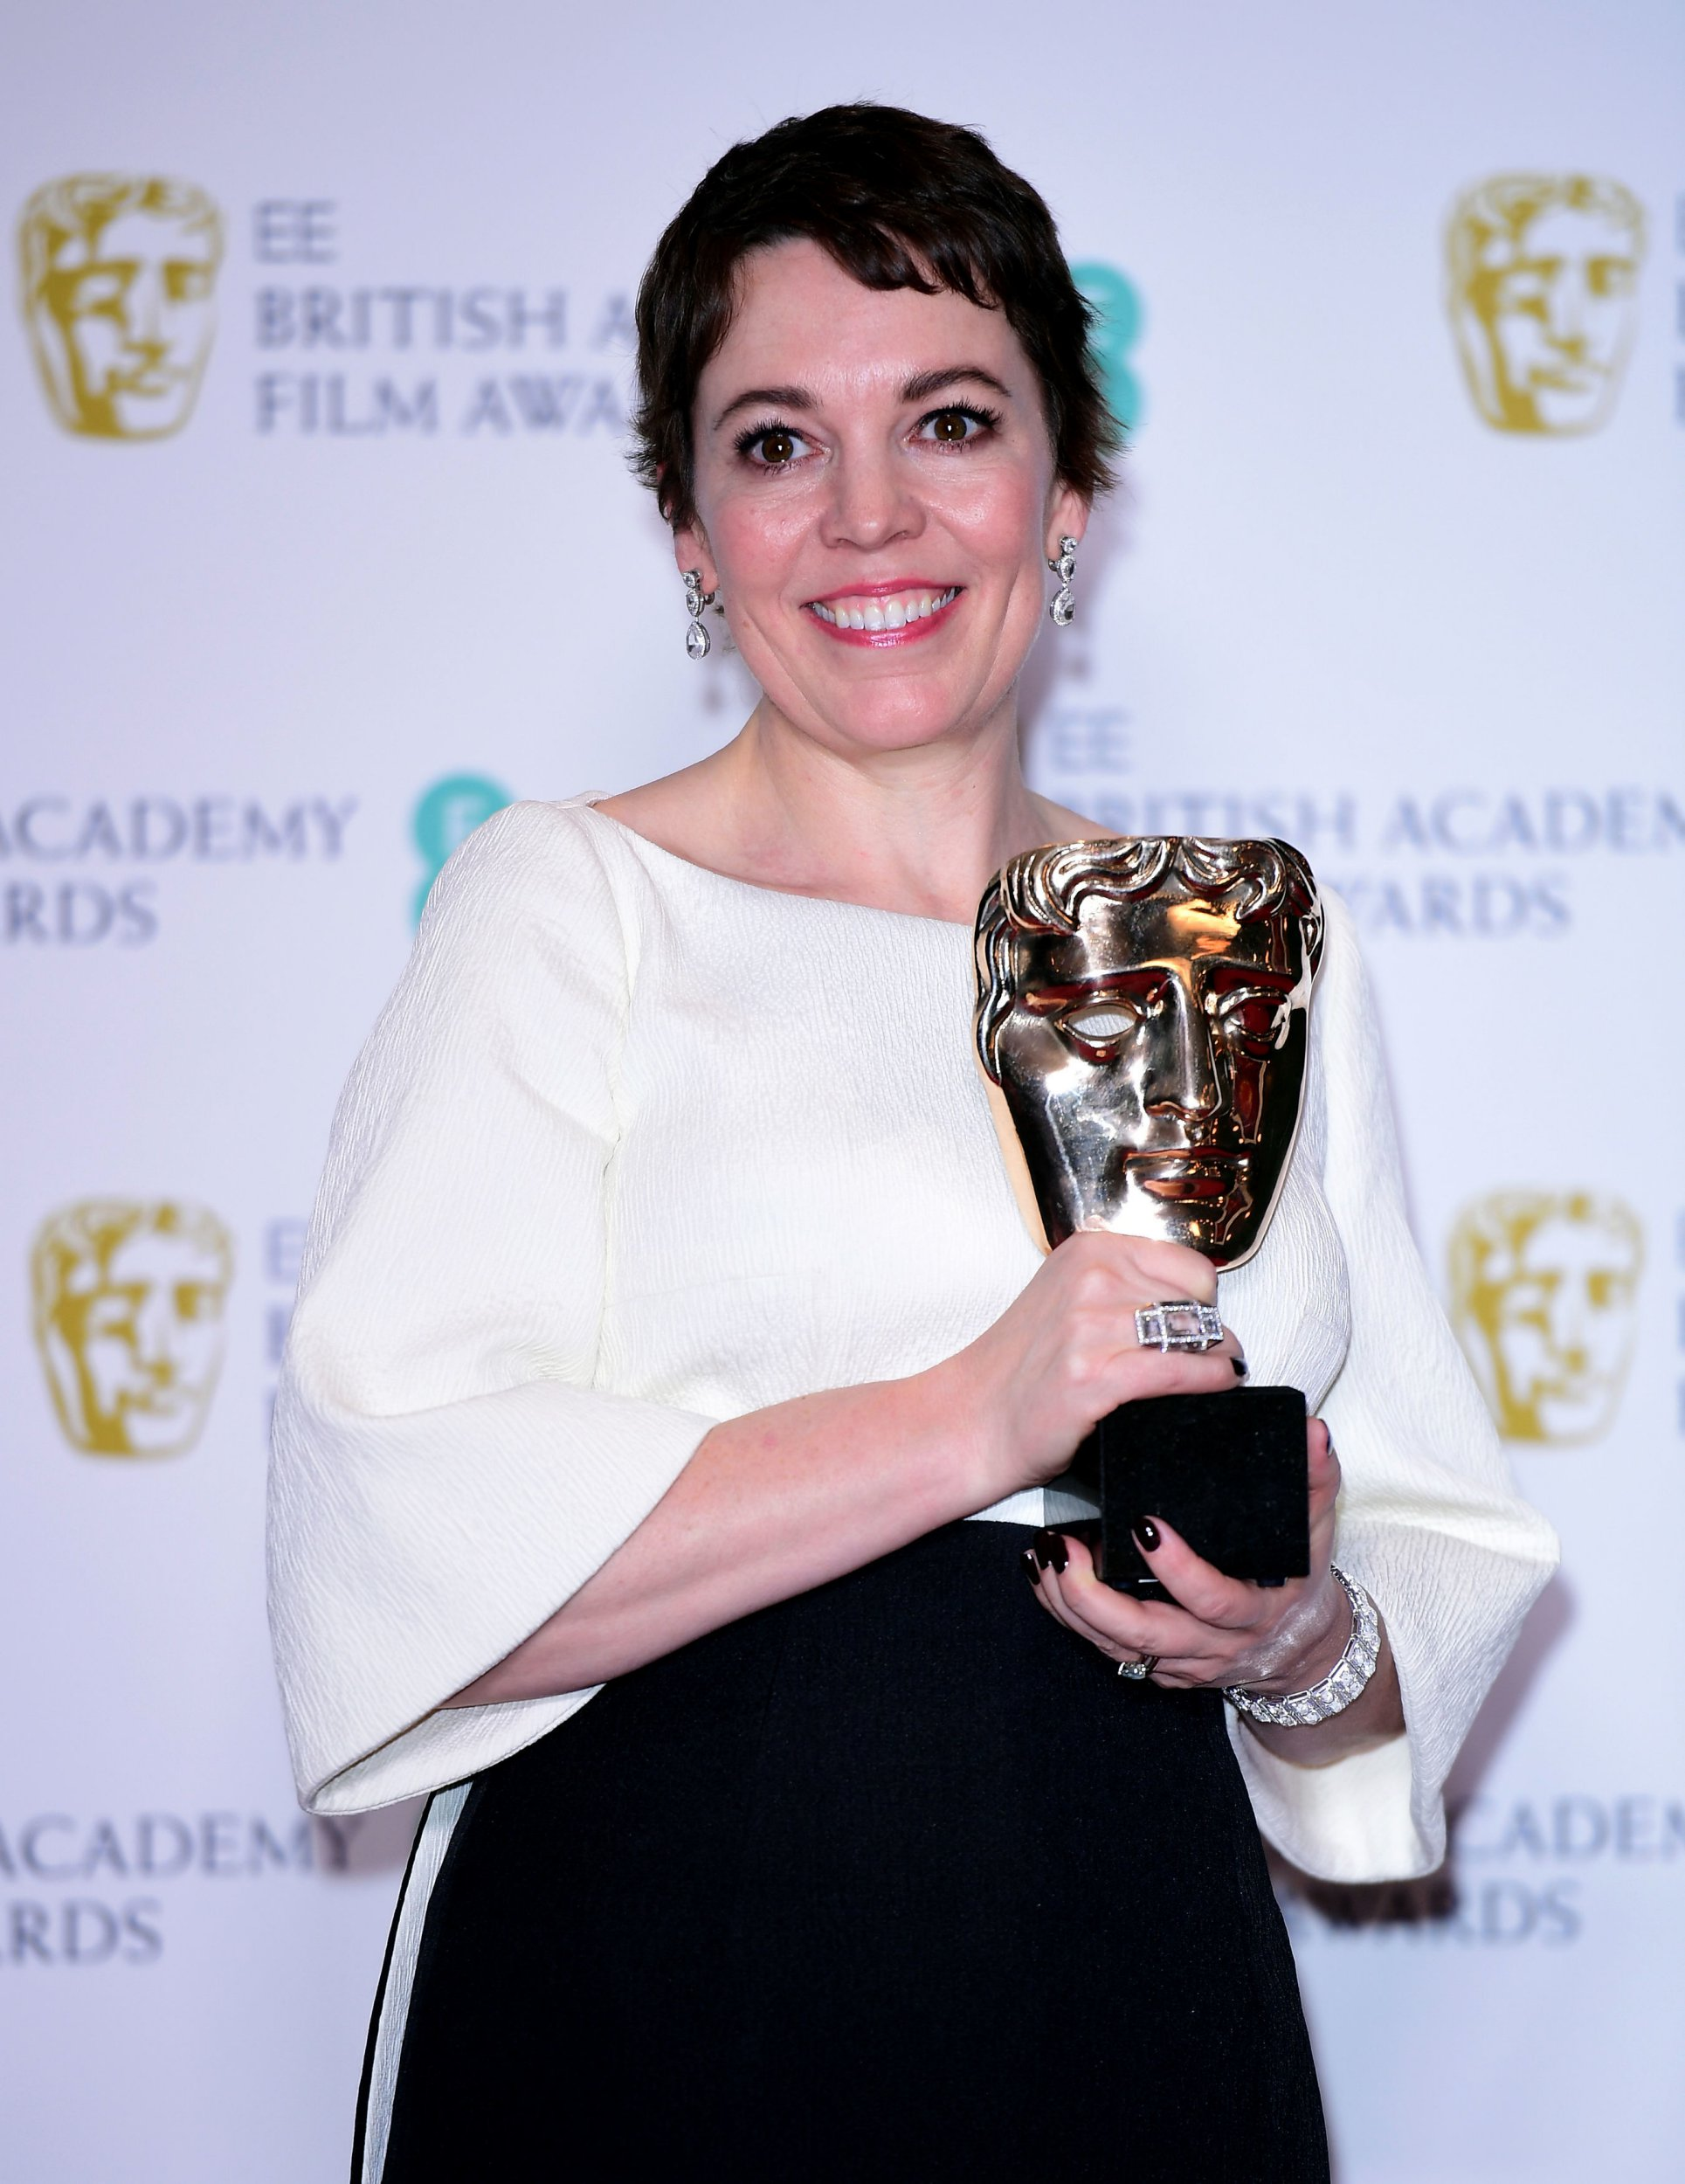 Olivia Colman with her Best Actress in a Leading Role Bafta for The Favourite in the press room at the 72nd British Academy Film Awards held at the Royal Albert Hall, Kensington Gore, Kensington, London. PRESS ASSOCIATION Photo. Picture date: Sunday February 10, 2019. See PA story SHOWBIZ Bafta. Photo credit should read: Ian West/PA Wire